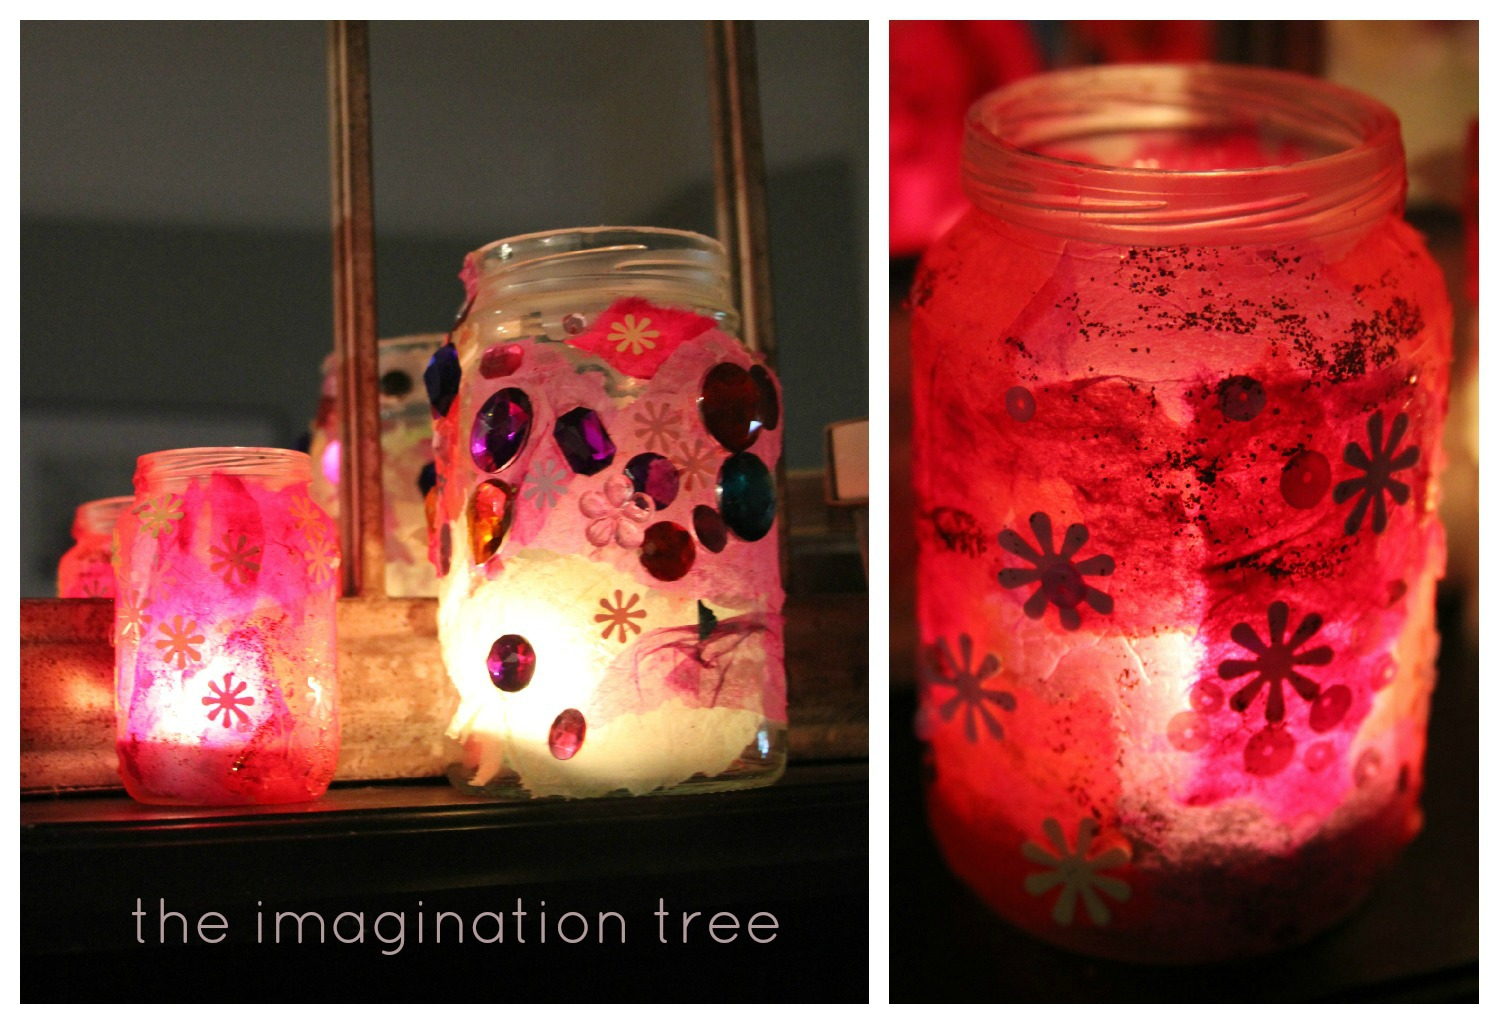 Create beautiful stained glass lanterns using recycled glass jars, tissue  paper and sequins! Perfect for an afternoon art activity